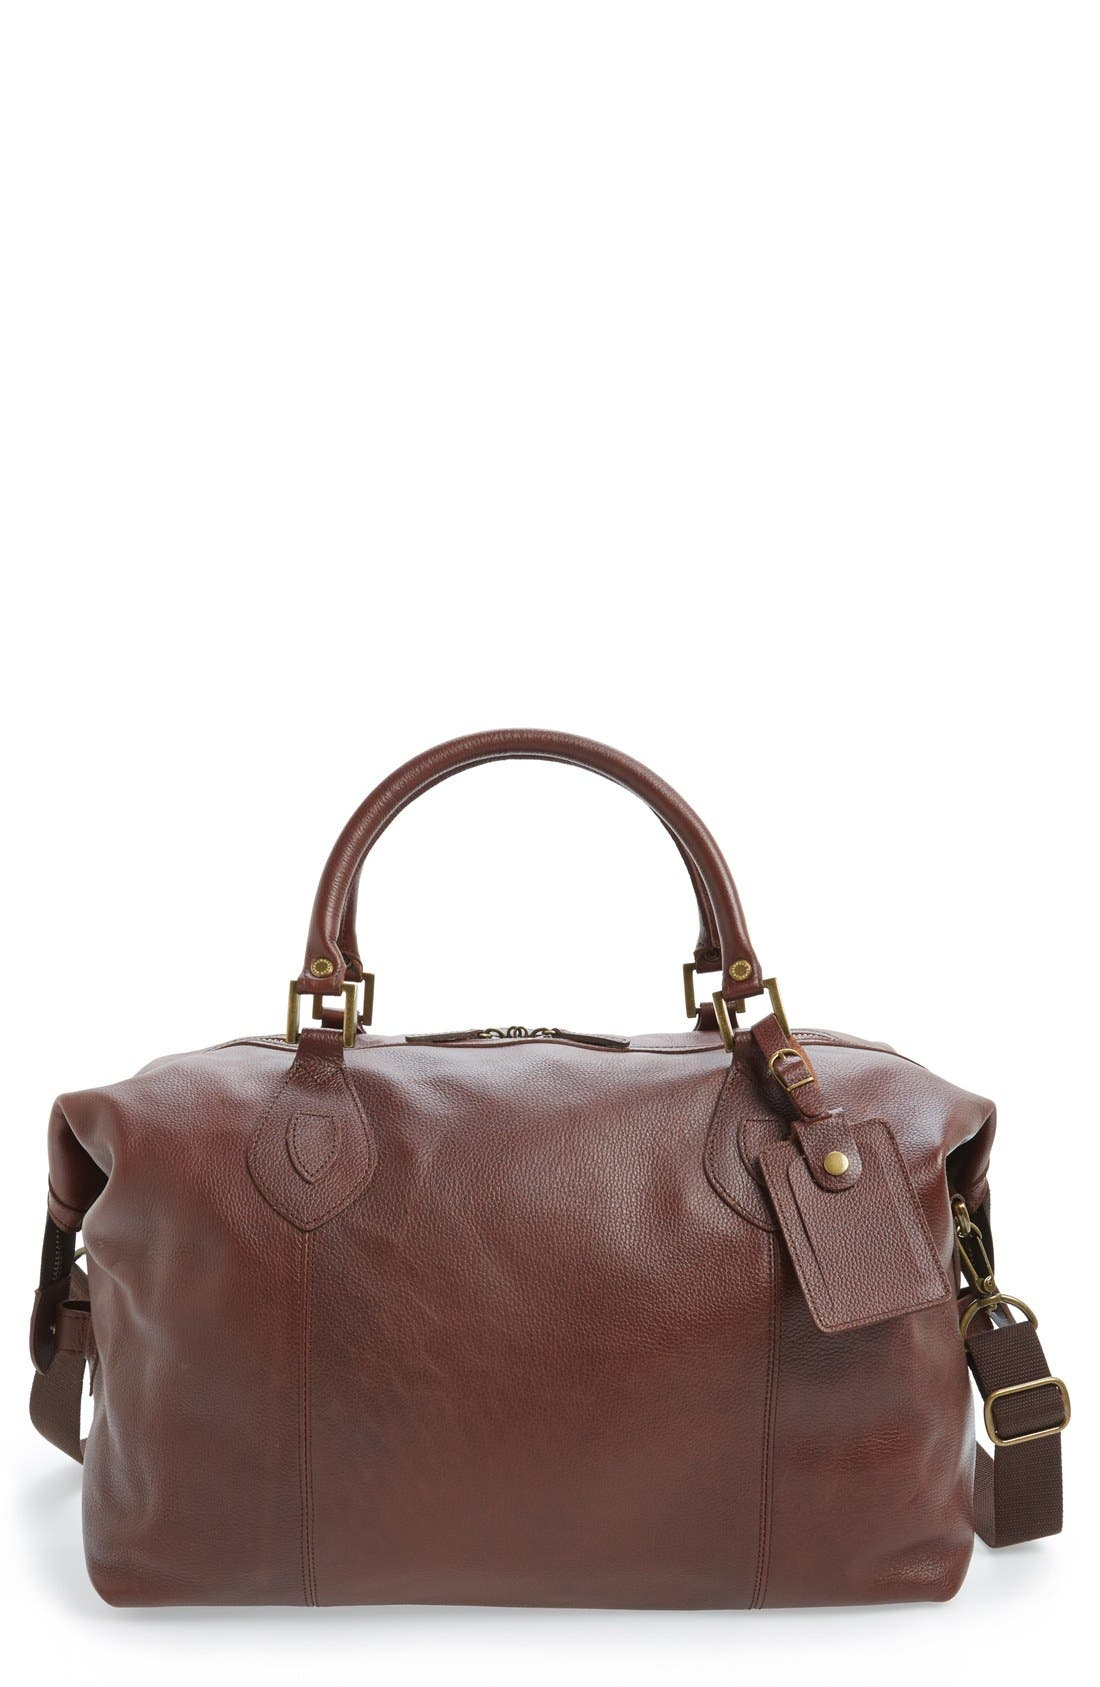 Main Image - Barbour Leather Travel Bag